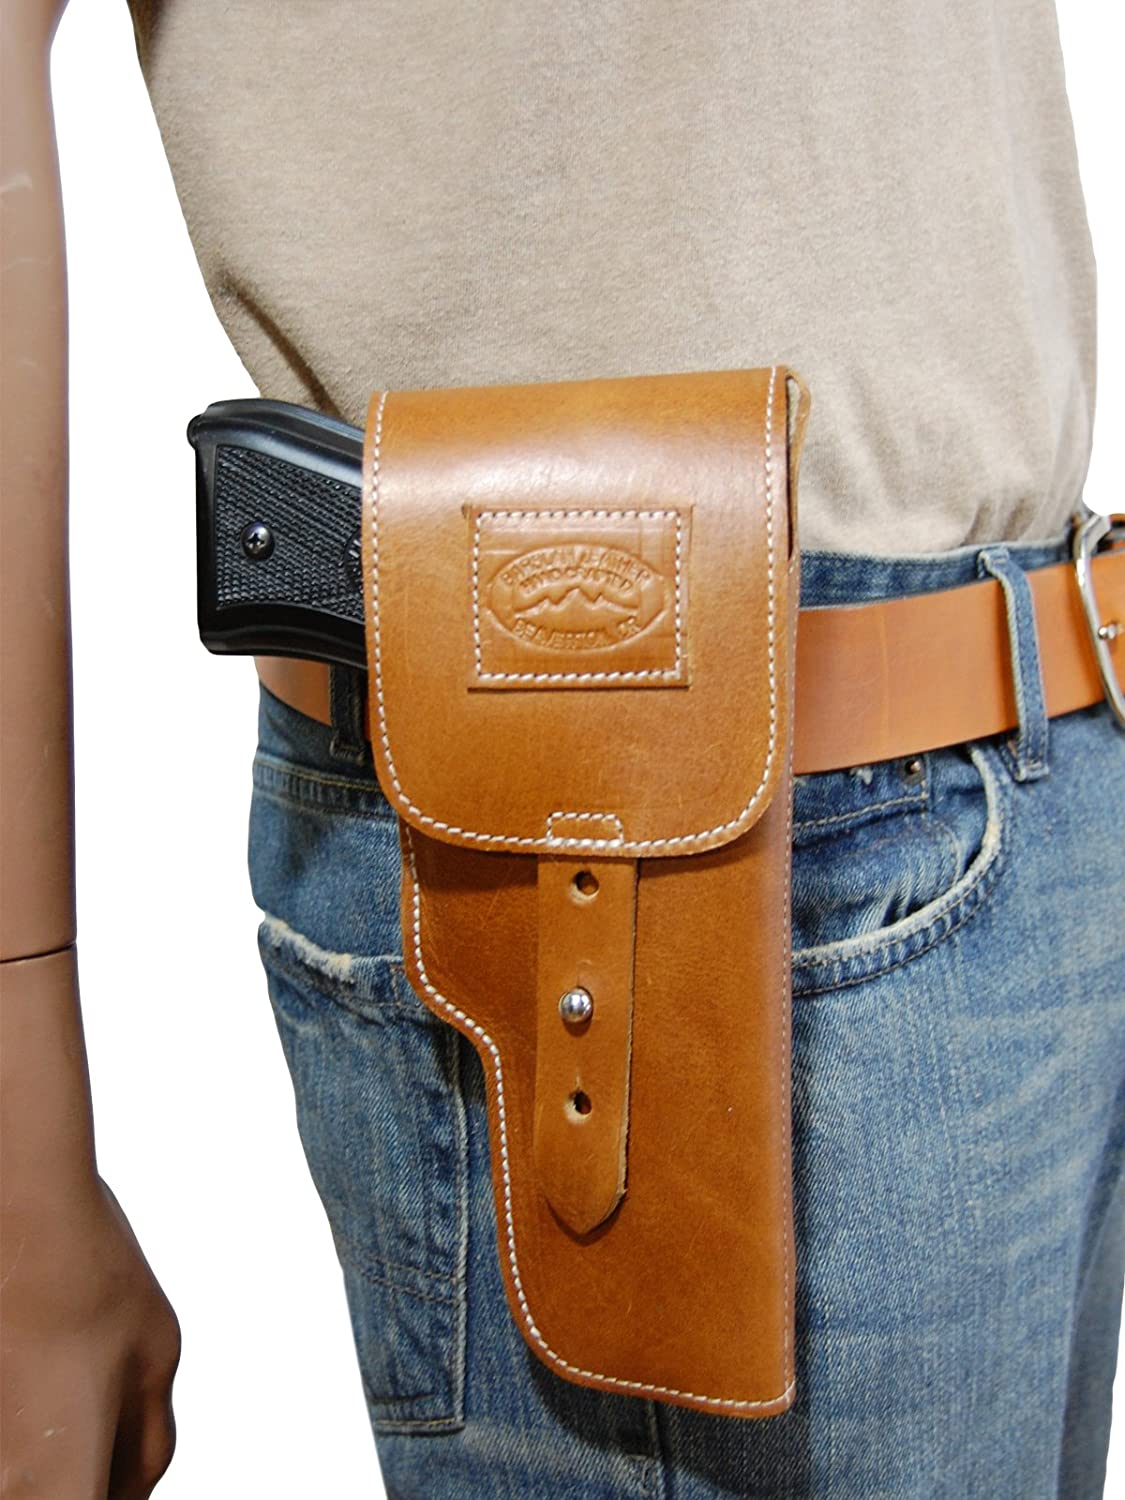 Barsony New Saddle Tan Leather Flap OWB Holster for Full Size 9mm 40 45 Pistols